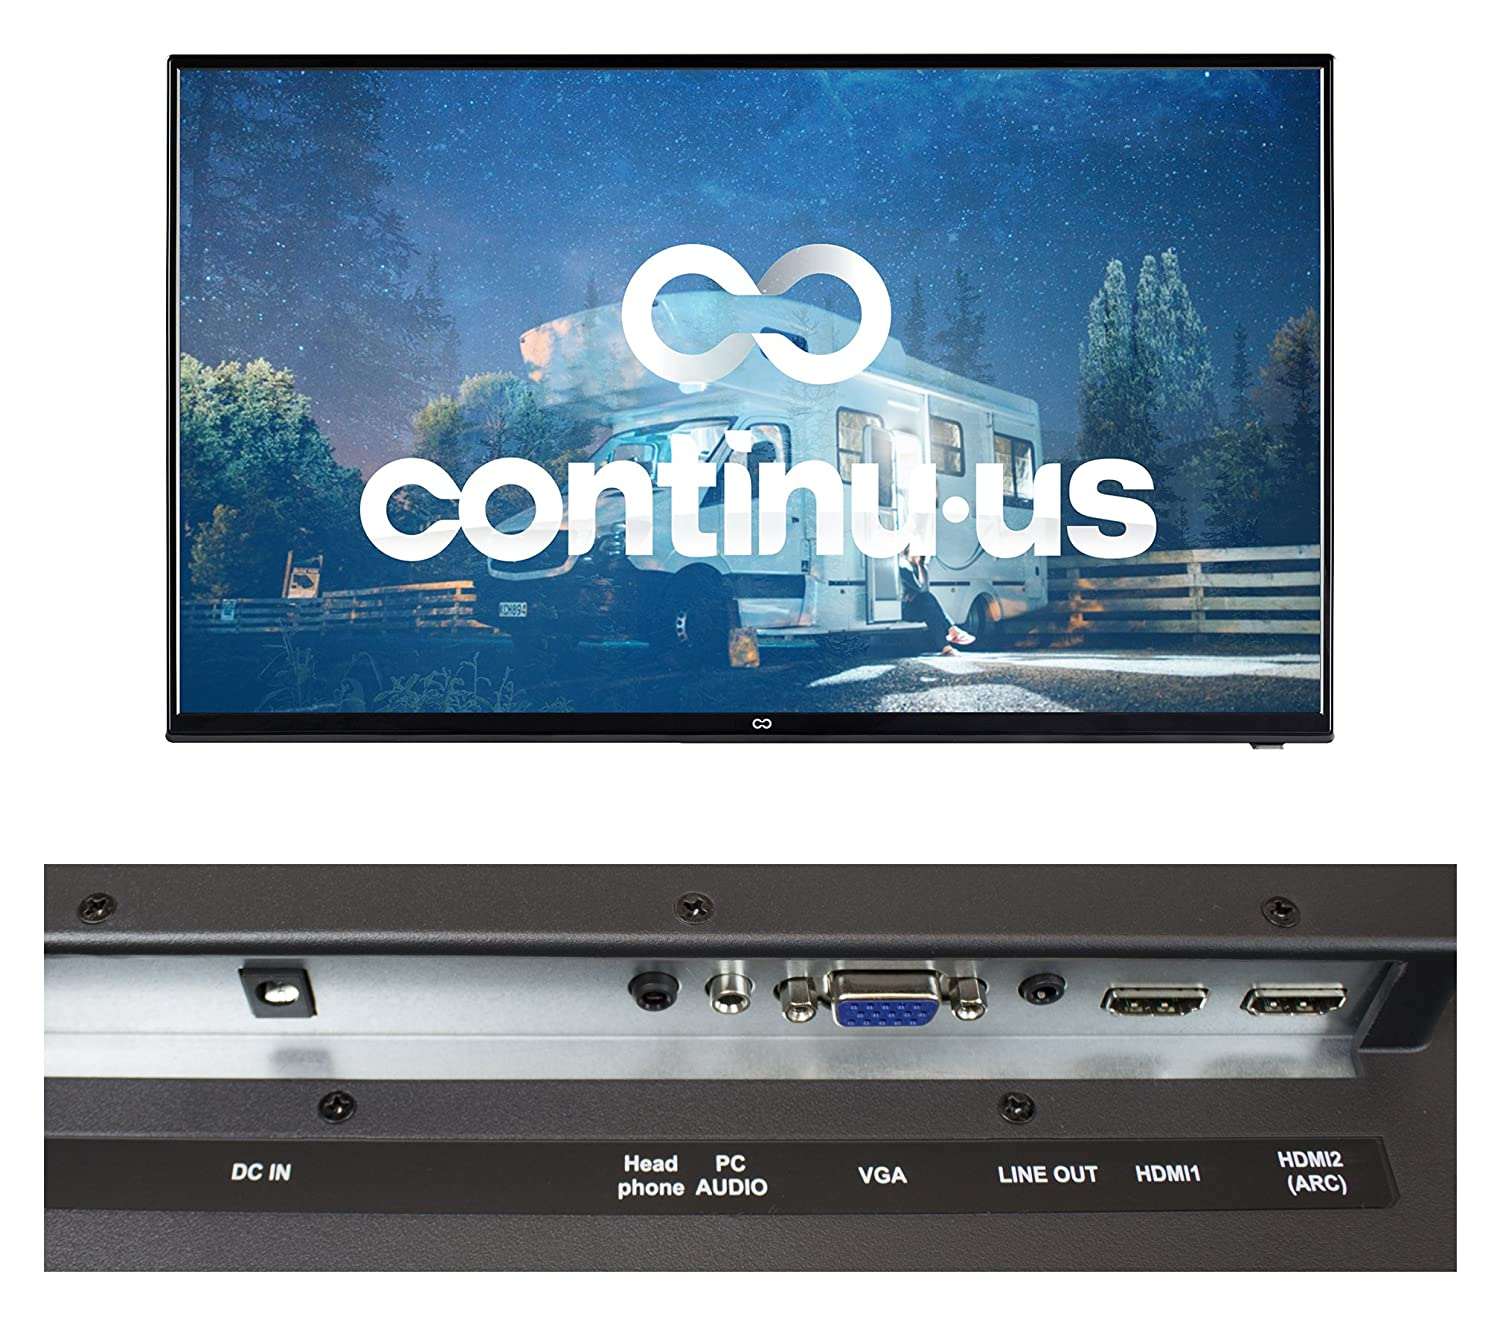 Continuus 28 12 Volt Hd Television Led Flat Screen Wiring Diagram Camper Stuff Pinterest Us Tv Ideal For Rvs Campers Motorhomes All Mobile Vehicle Use 12v Car Cord Technology